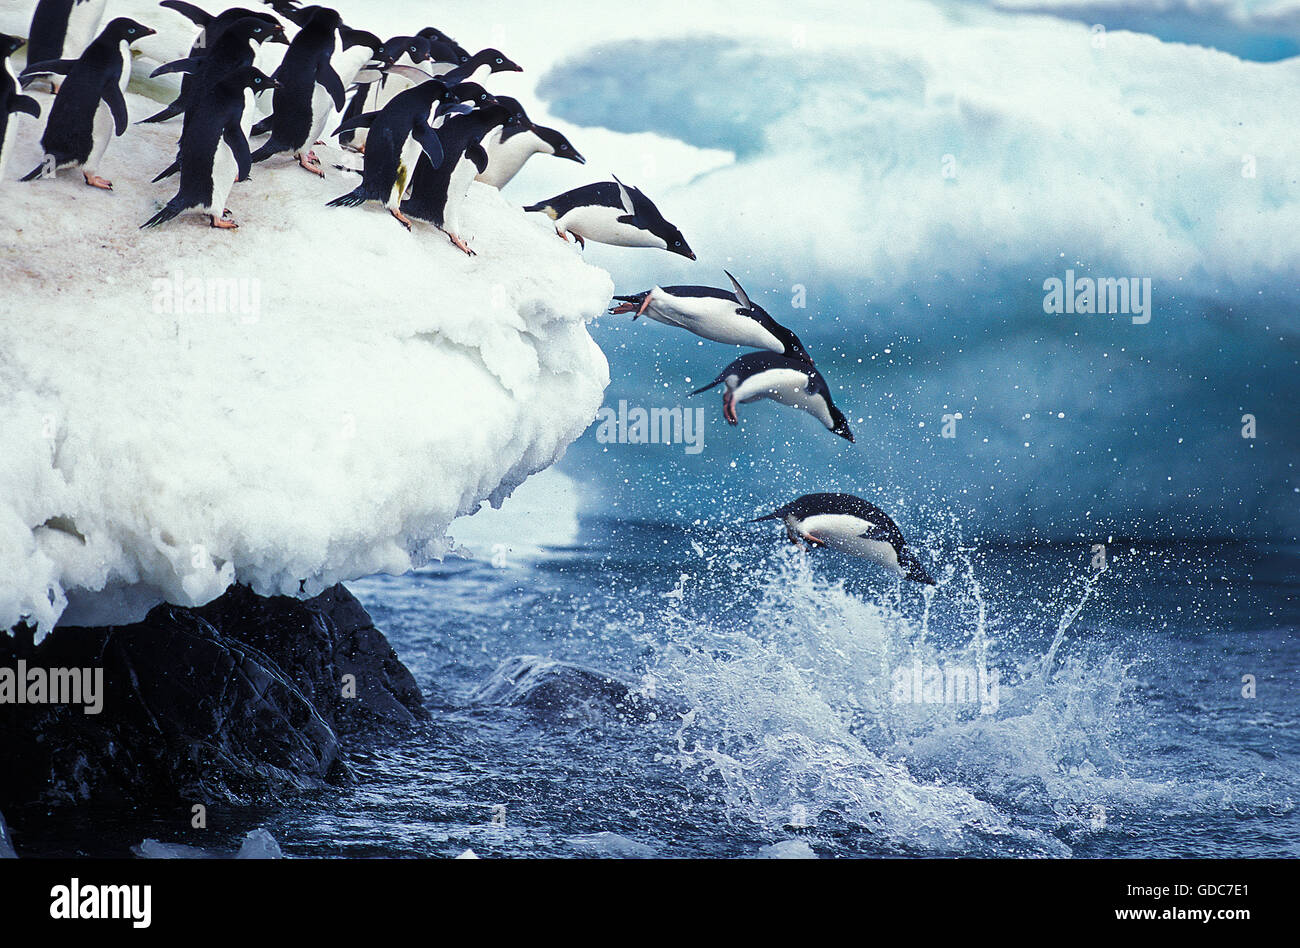 ADELIE PENGUIN pygoscelis adeliae, COLONY ON PAULET ISLAND, GROUP LEAPING INTO OCEAN, ANTARTICA - Stock Image